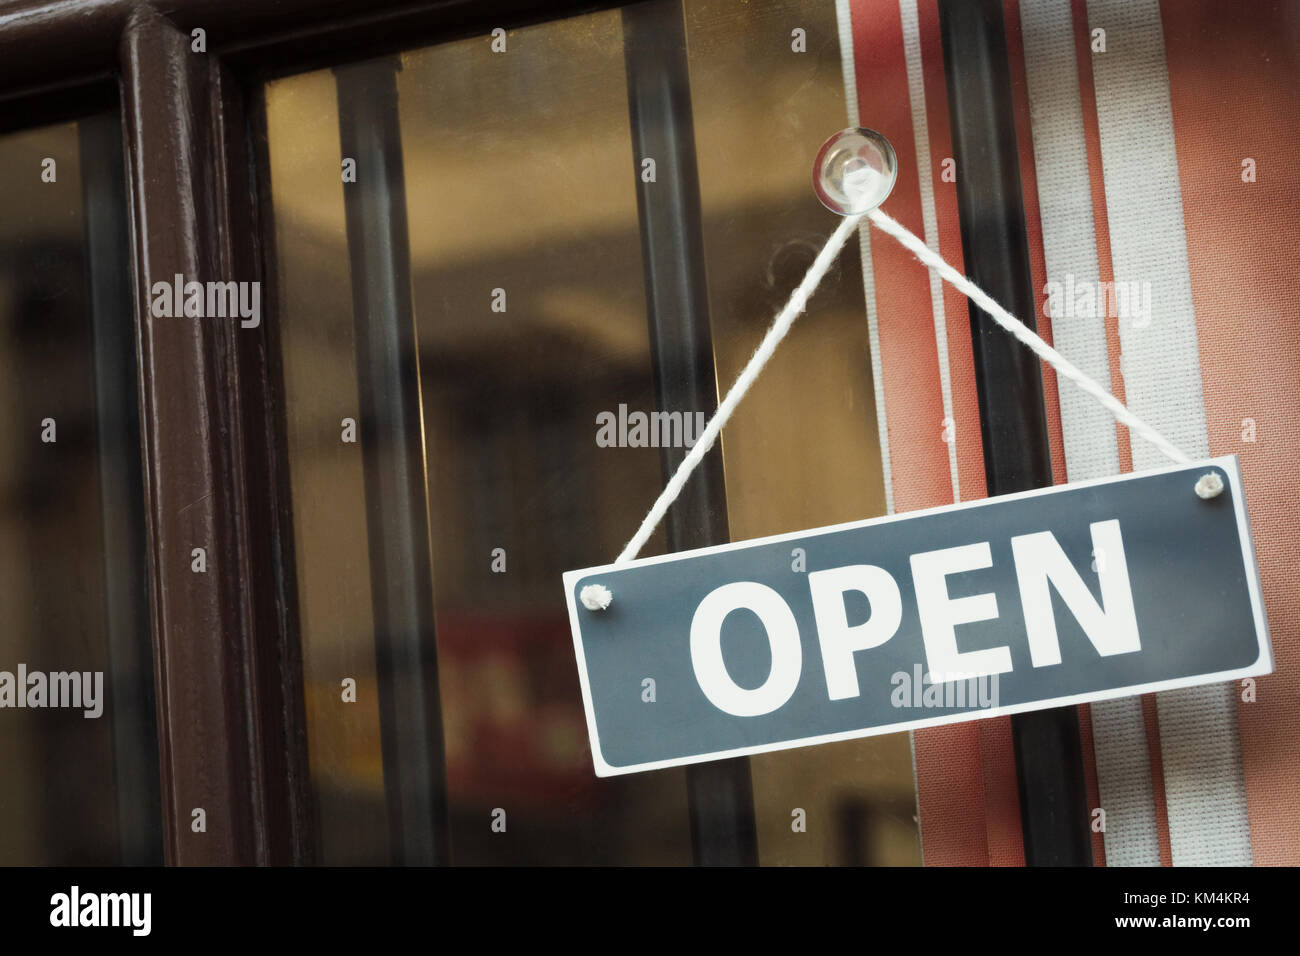 A shop door with a sign saying Open. - Stock Image